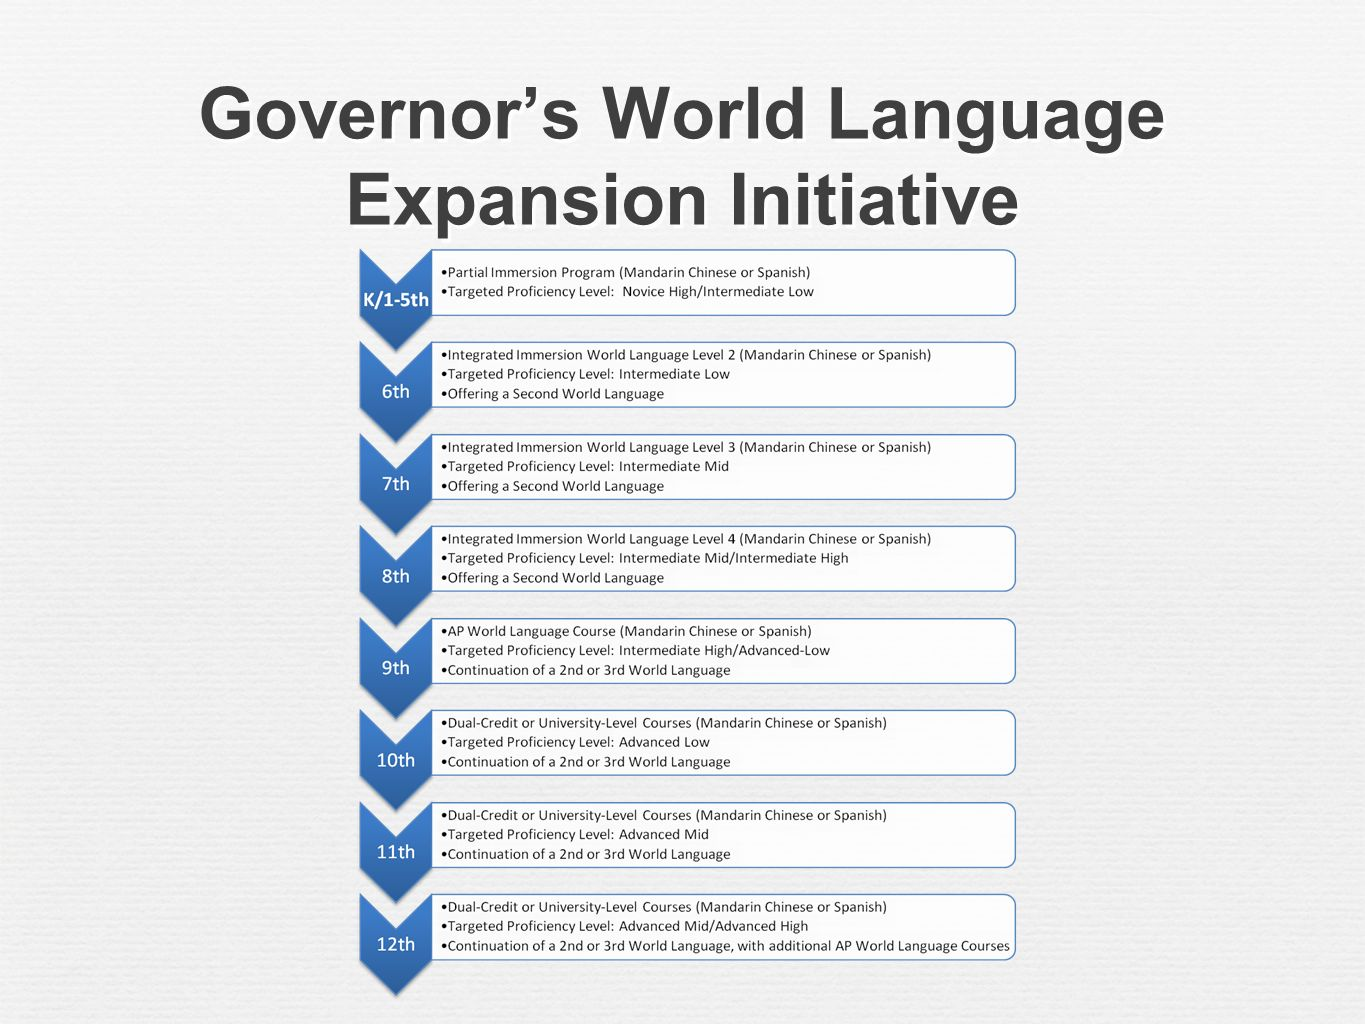 Governors World Language Expansion Initiative